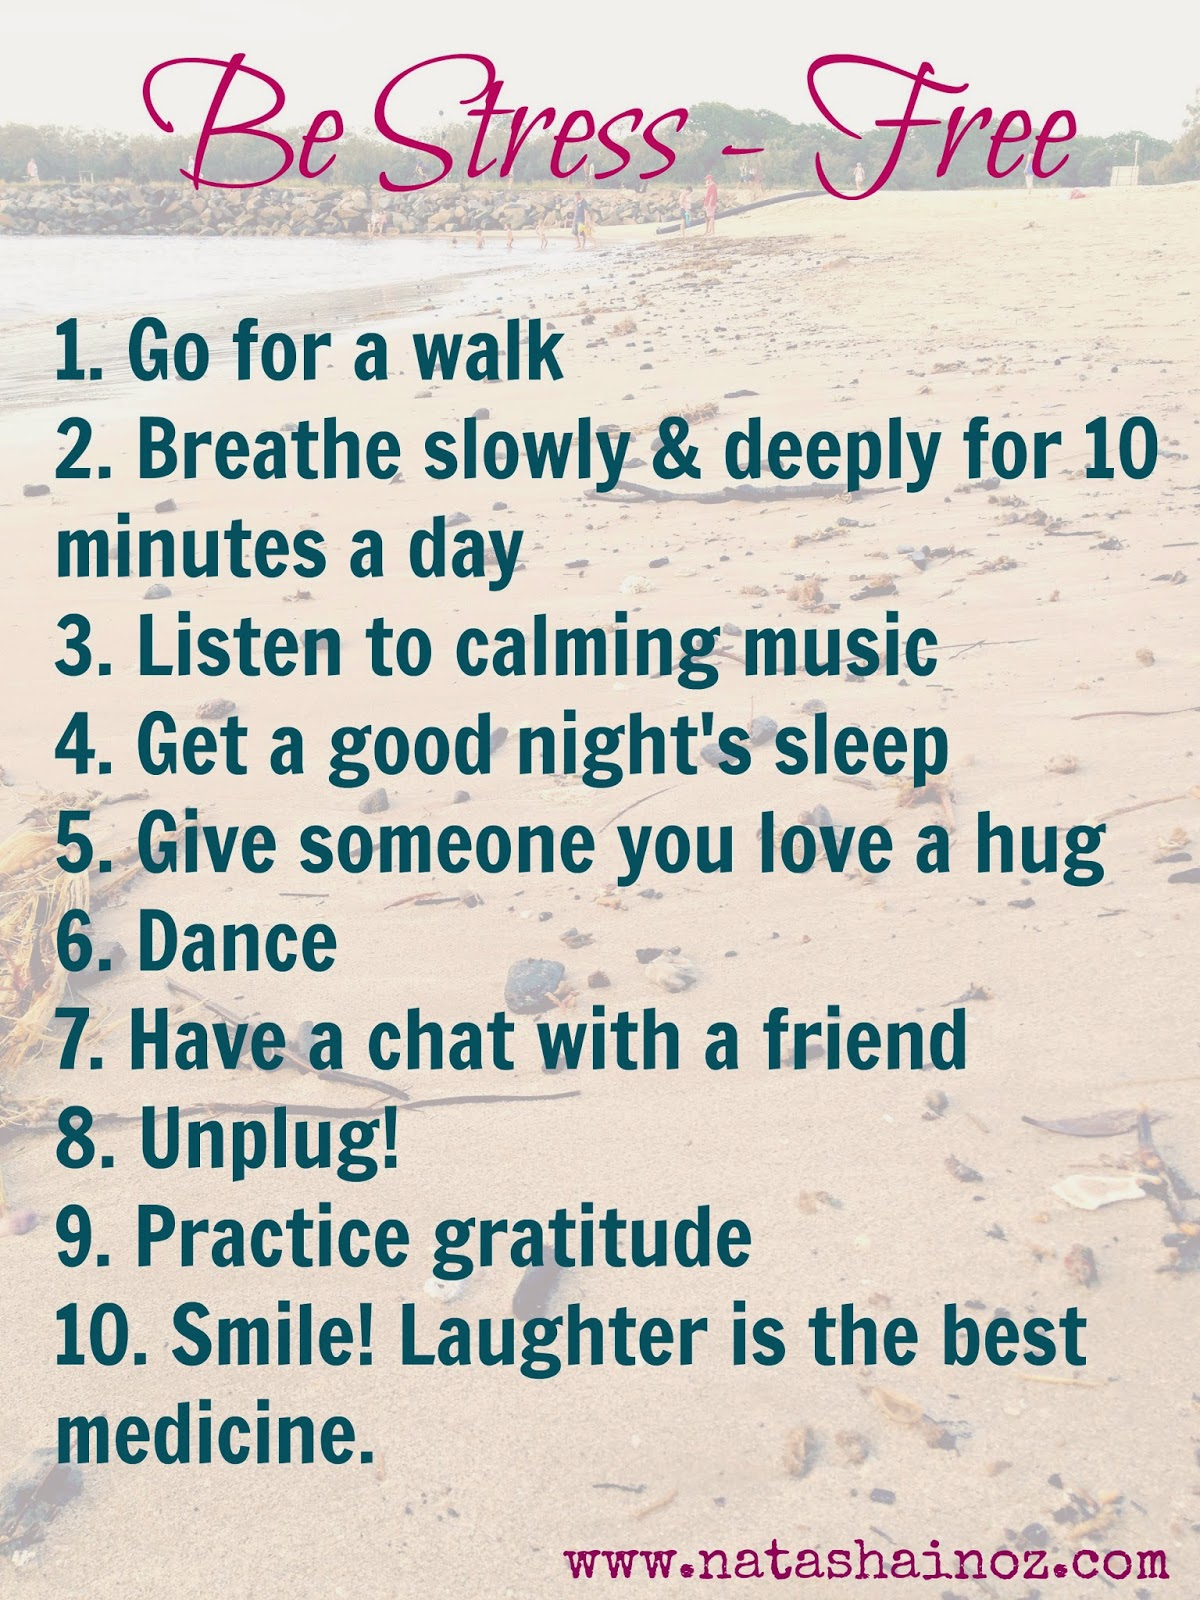 10 Ways to De-Stress, Be Stress-Free,